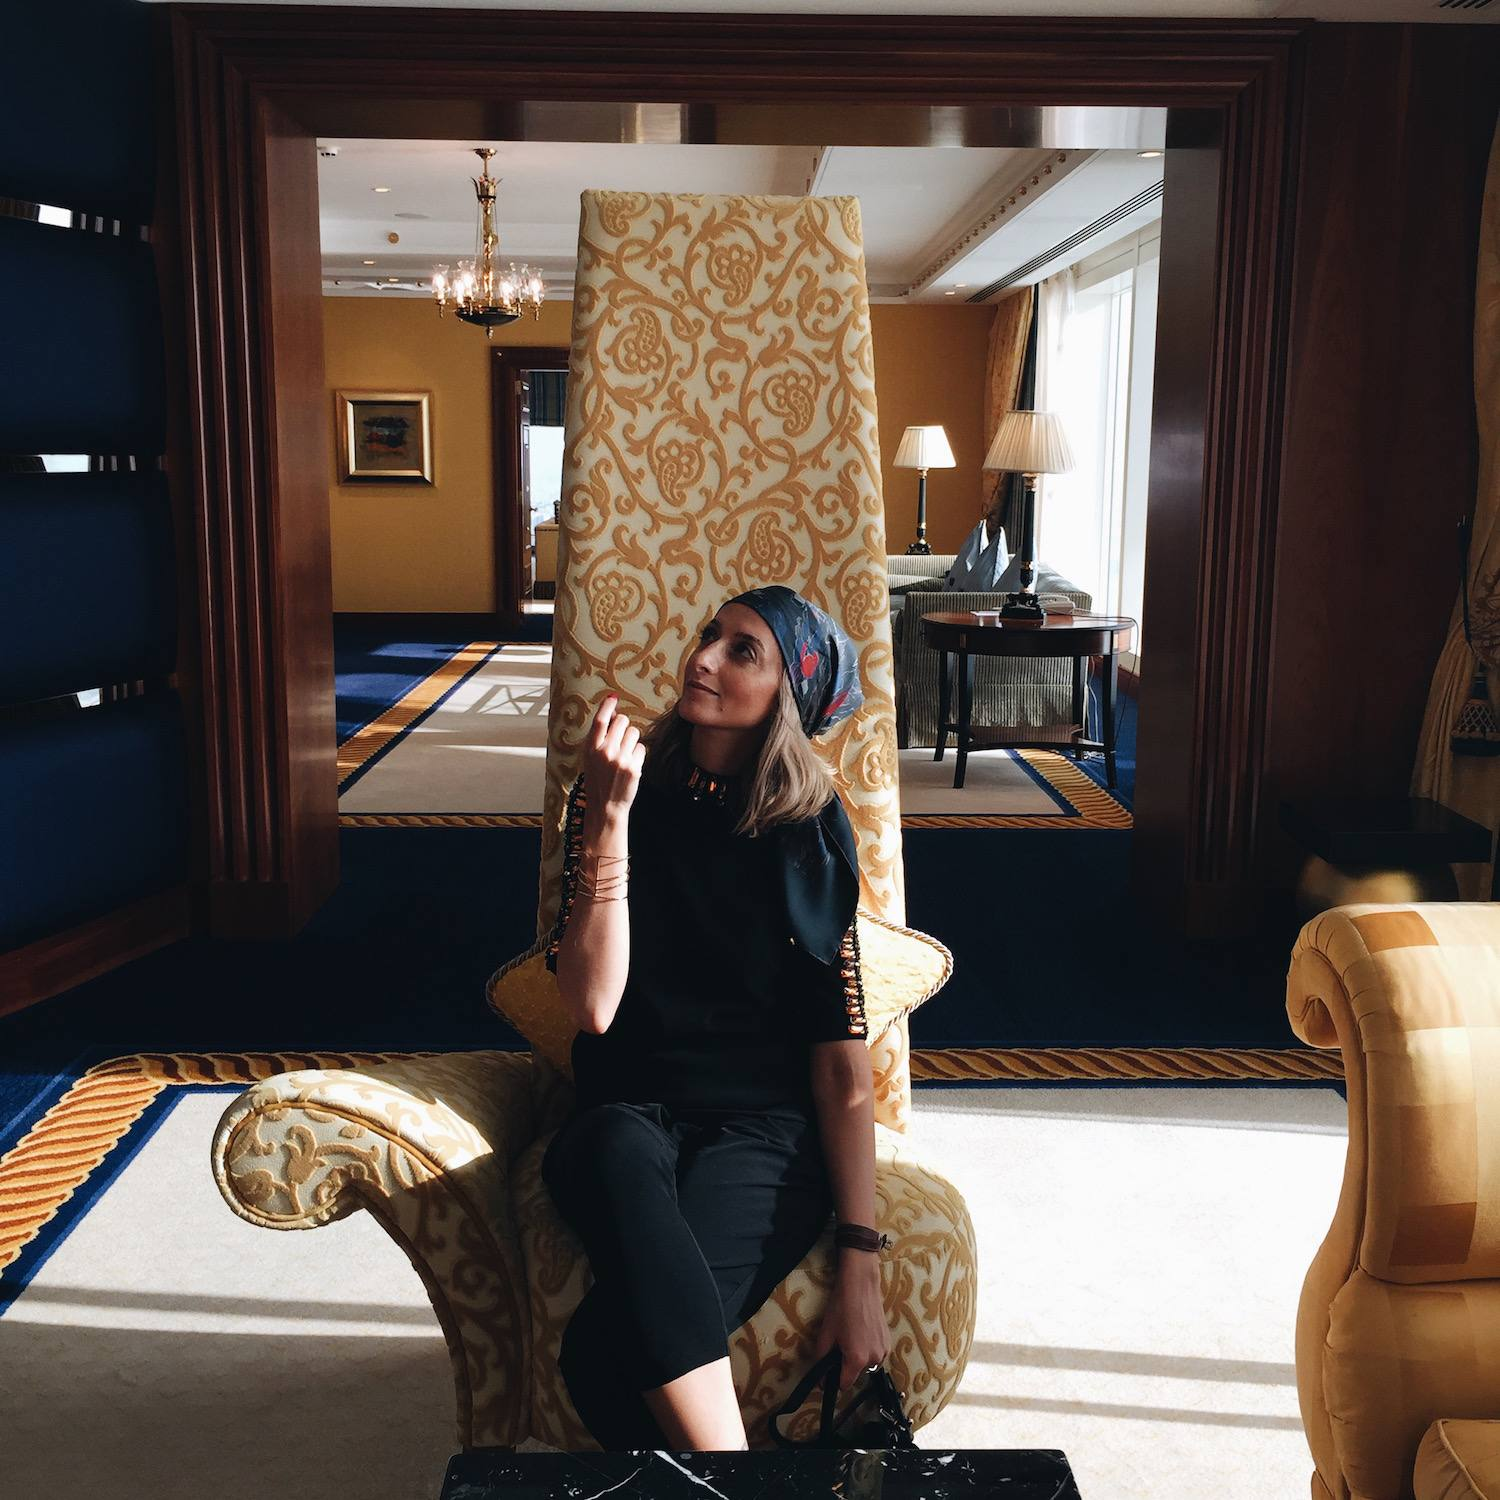 Dubai Travel Diary 102